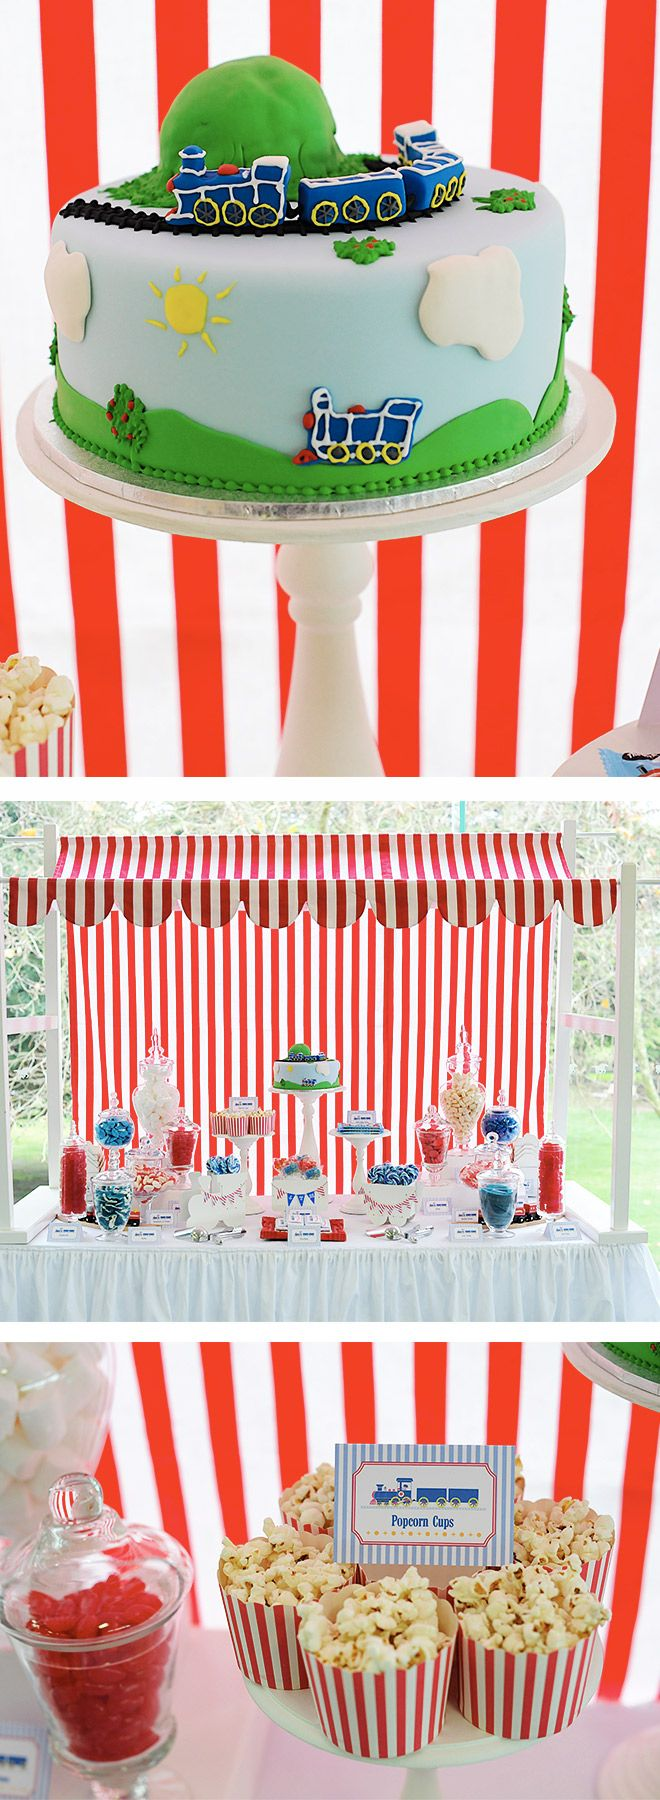 All Aboard! Train Party Lolly Buffet with awesome train birthday cake, popped popcorn and blue and red sweet treats!